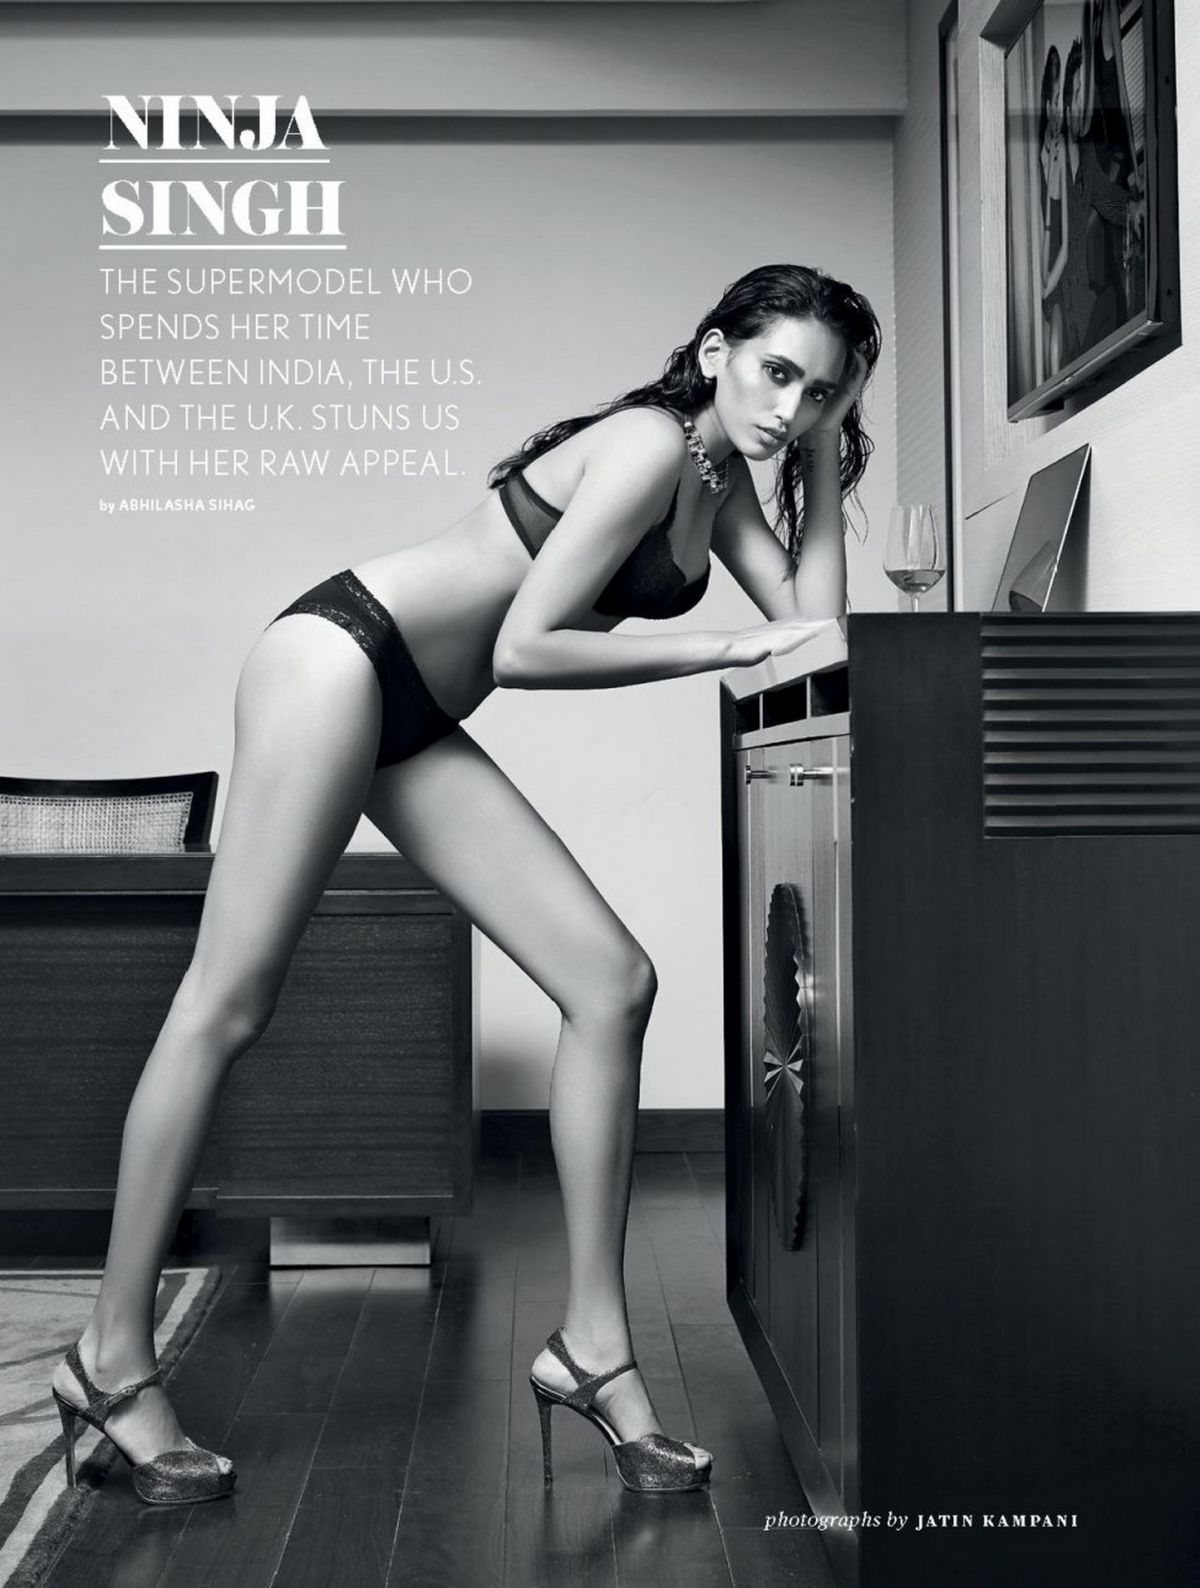 NINJA SINGH in Maxim Magazine, India October 2016 Issue